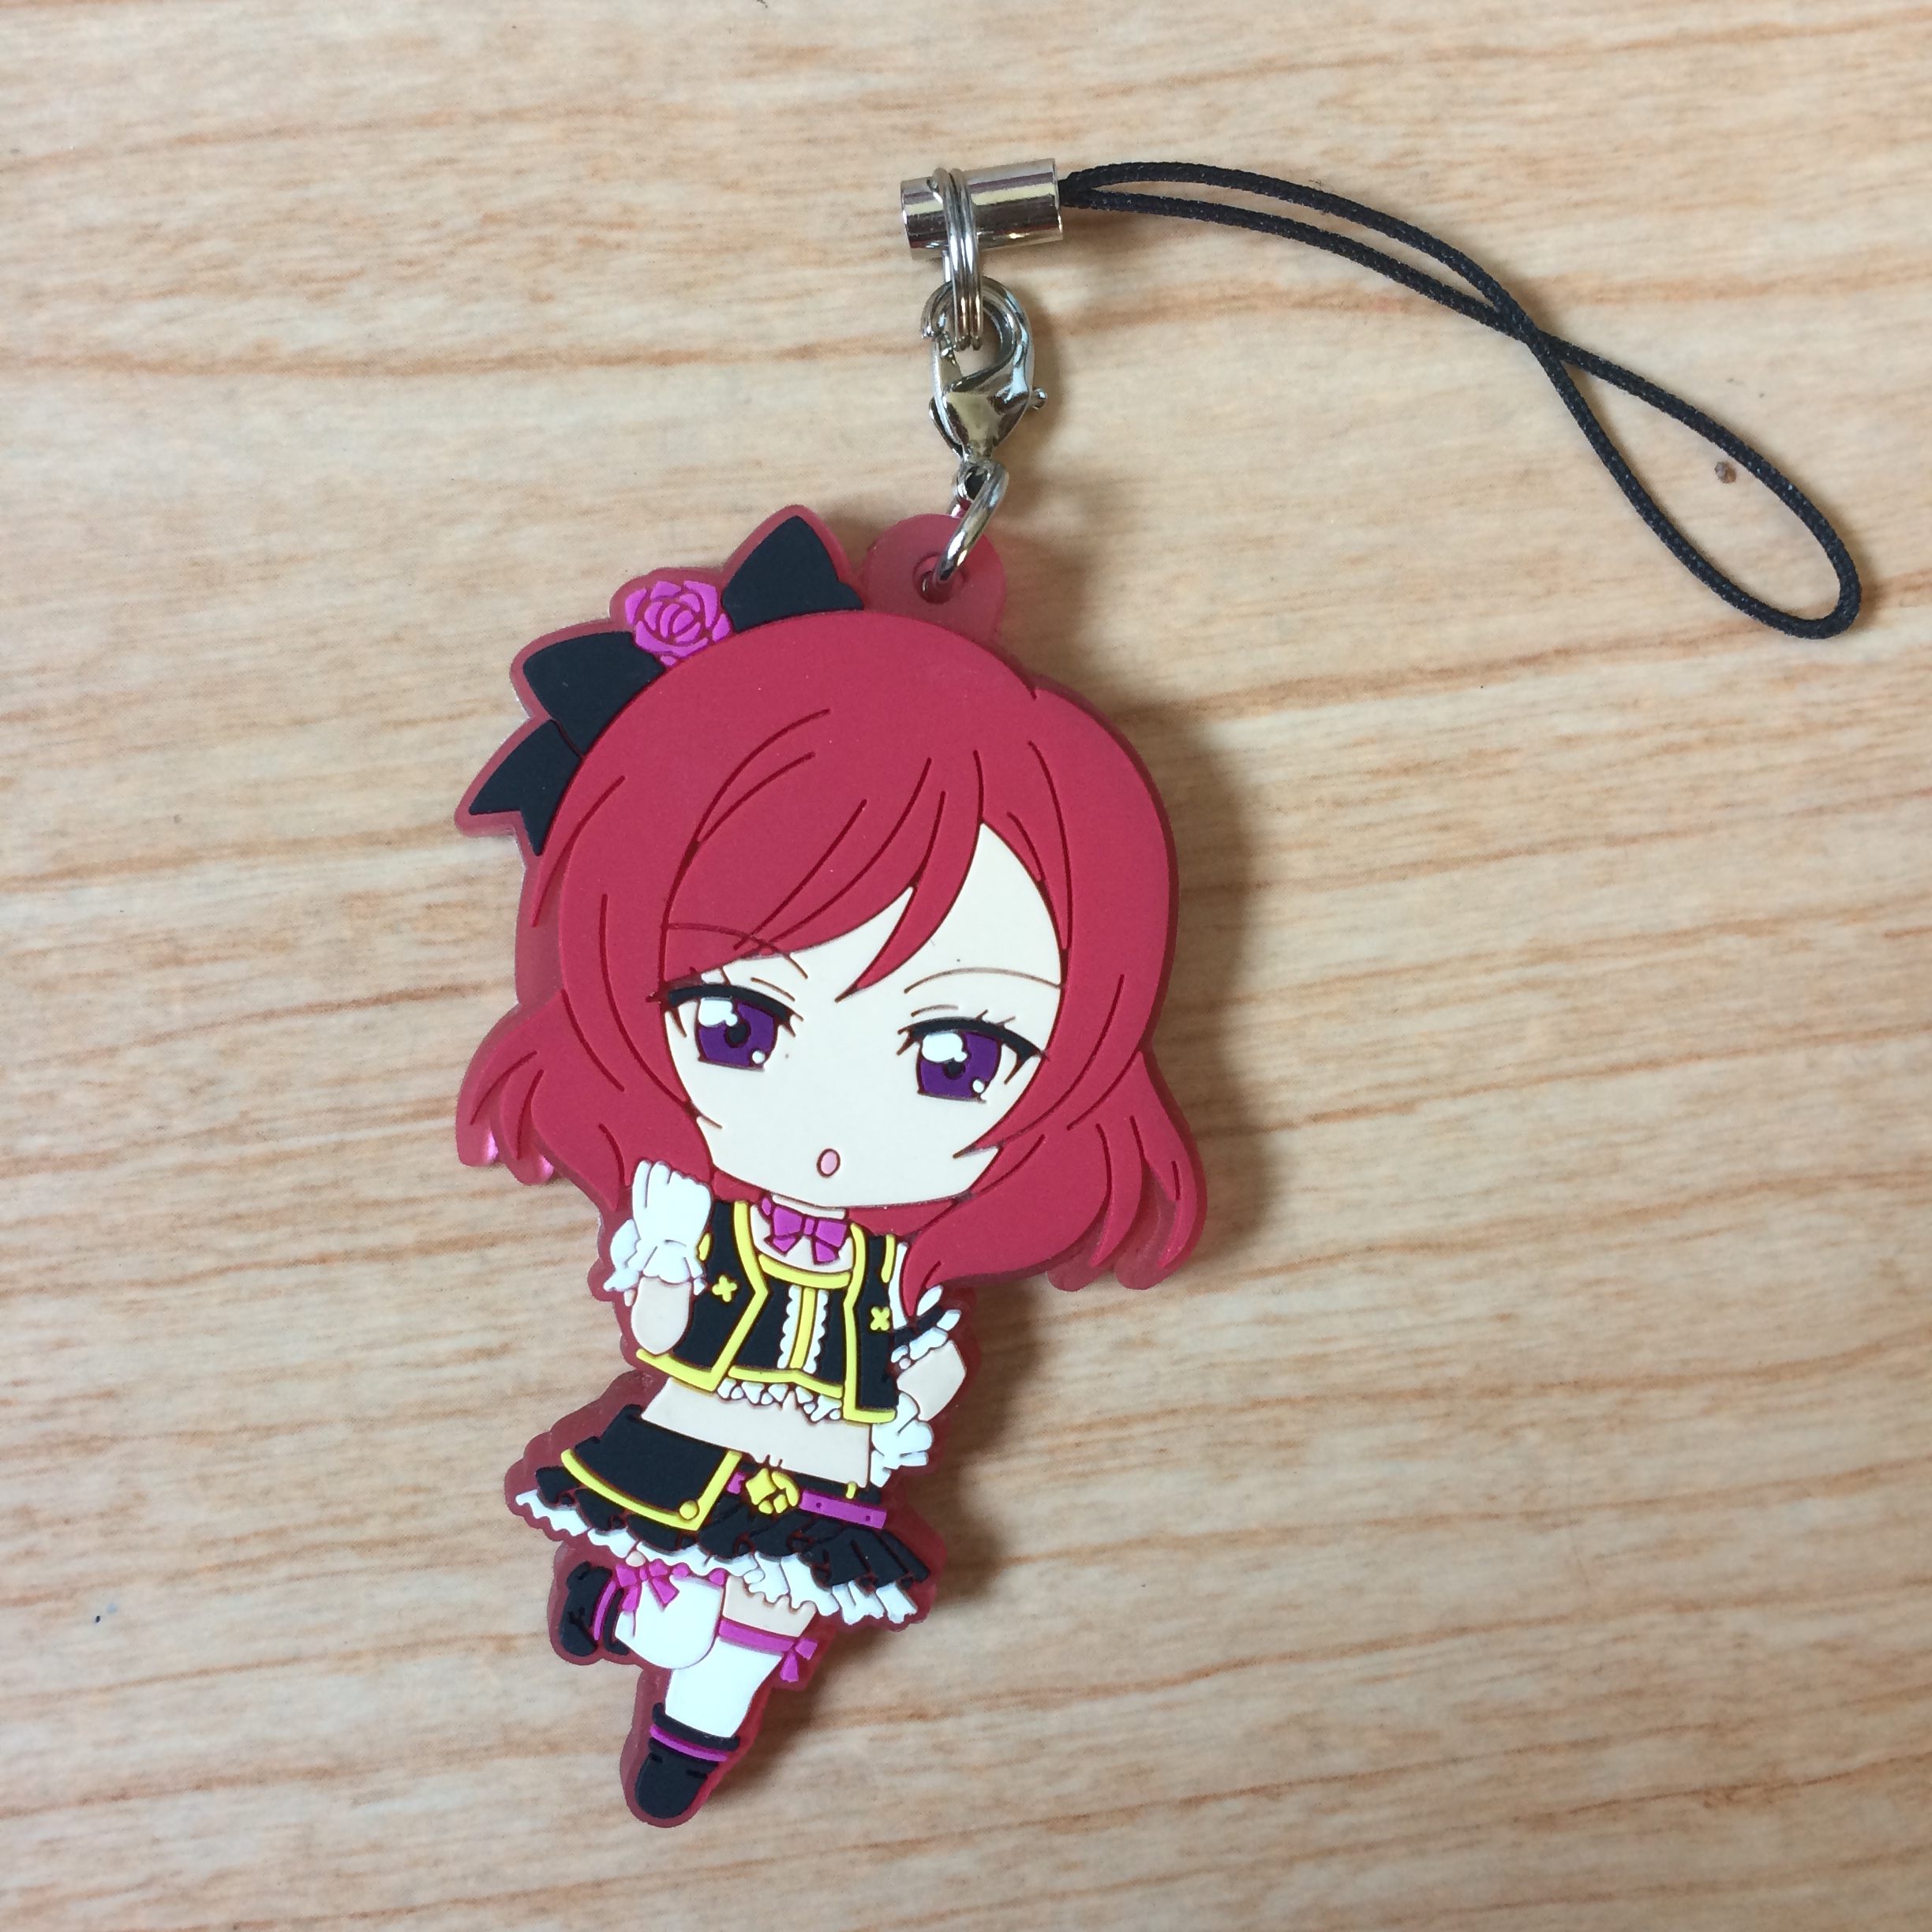 blind_box_figure trade rubber_keychain love_live!_school_idol_project cell_phone_charm nishikino_maki open_for_trades for_trade maki_nishikino